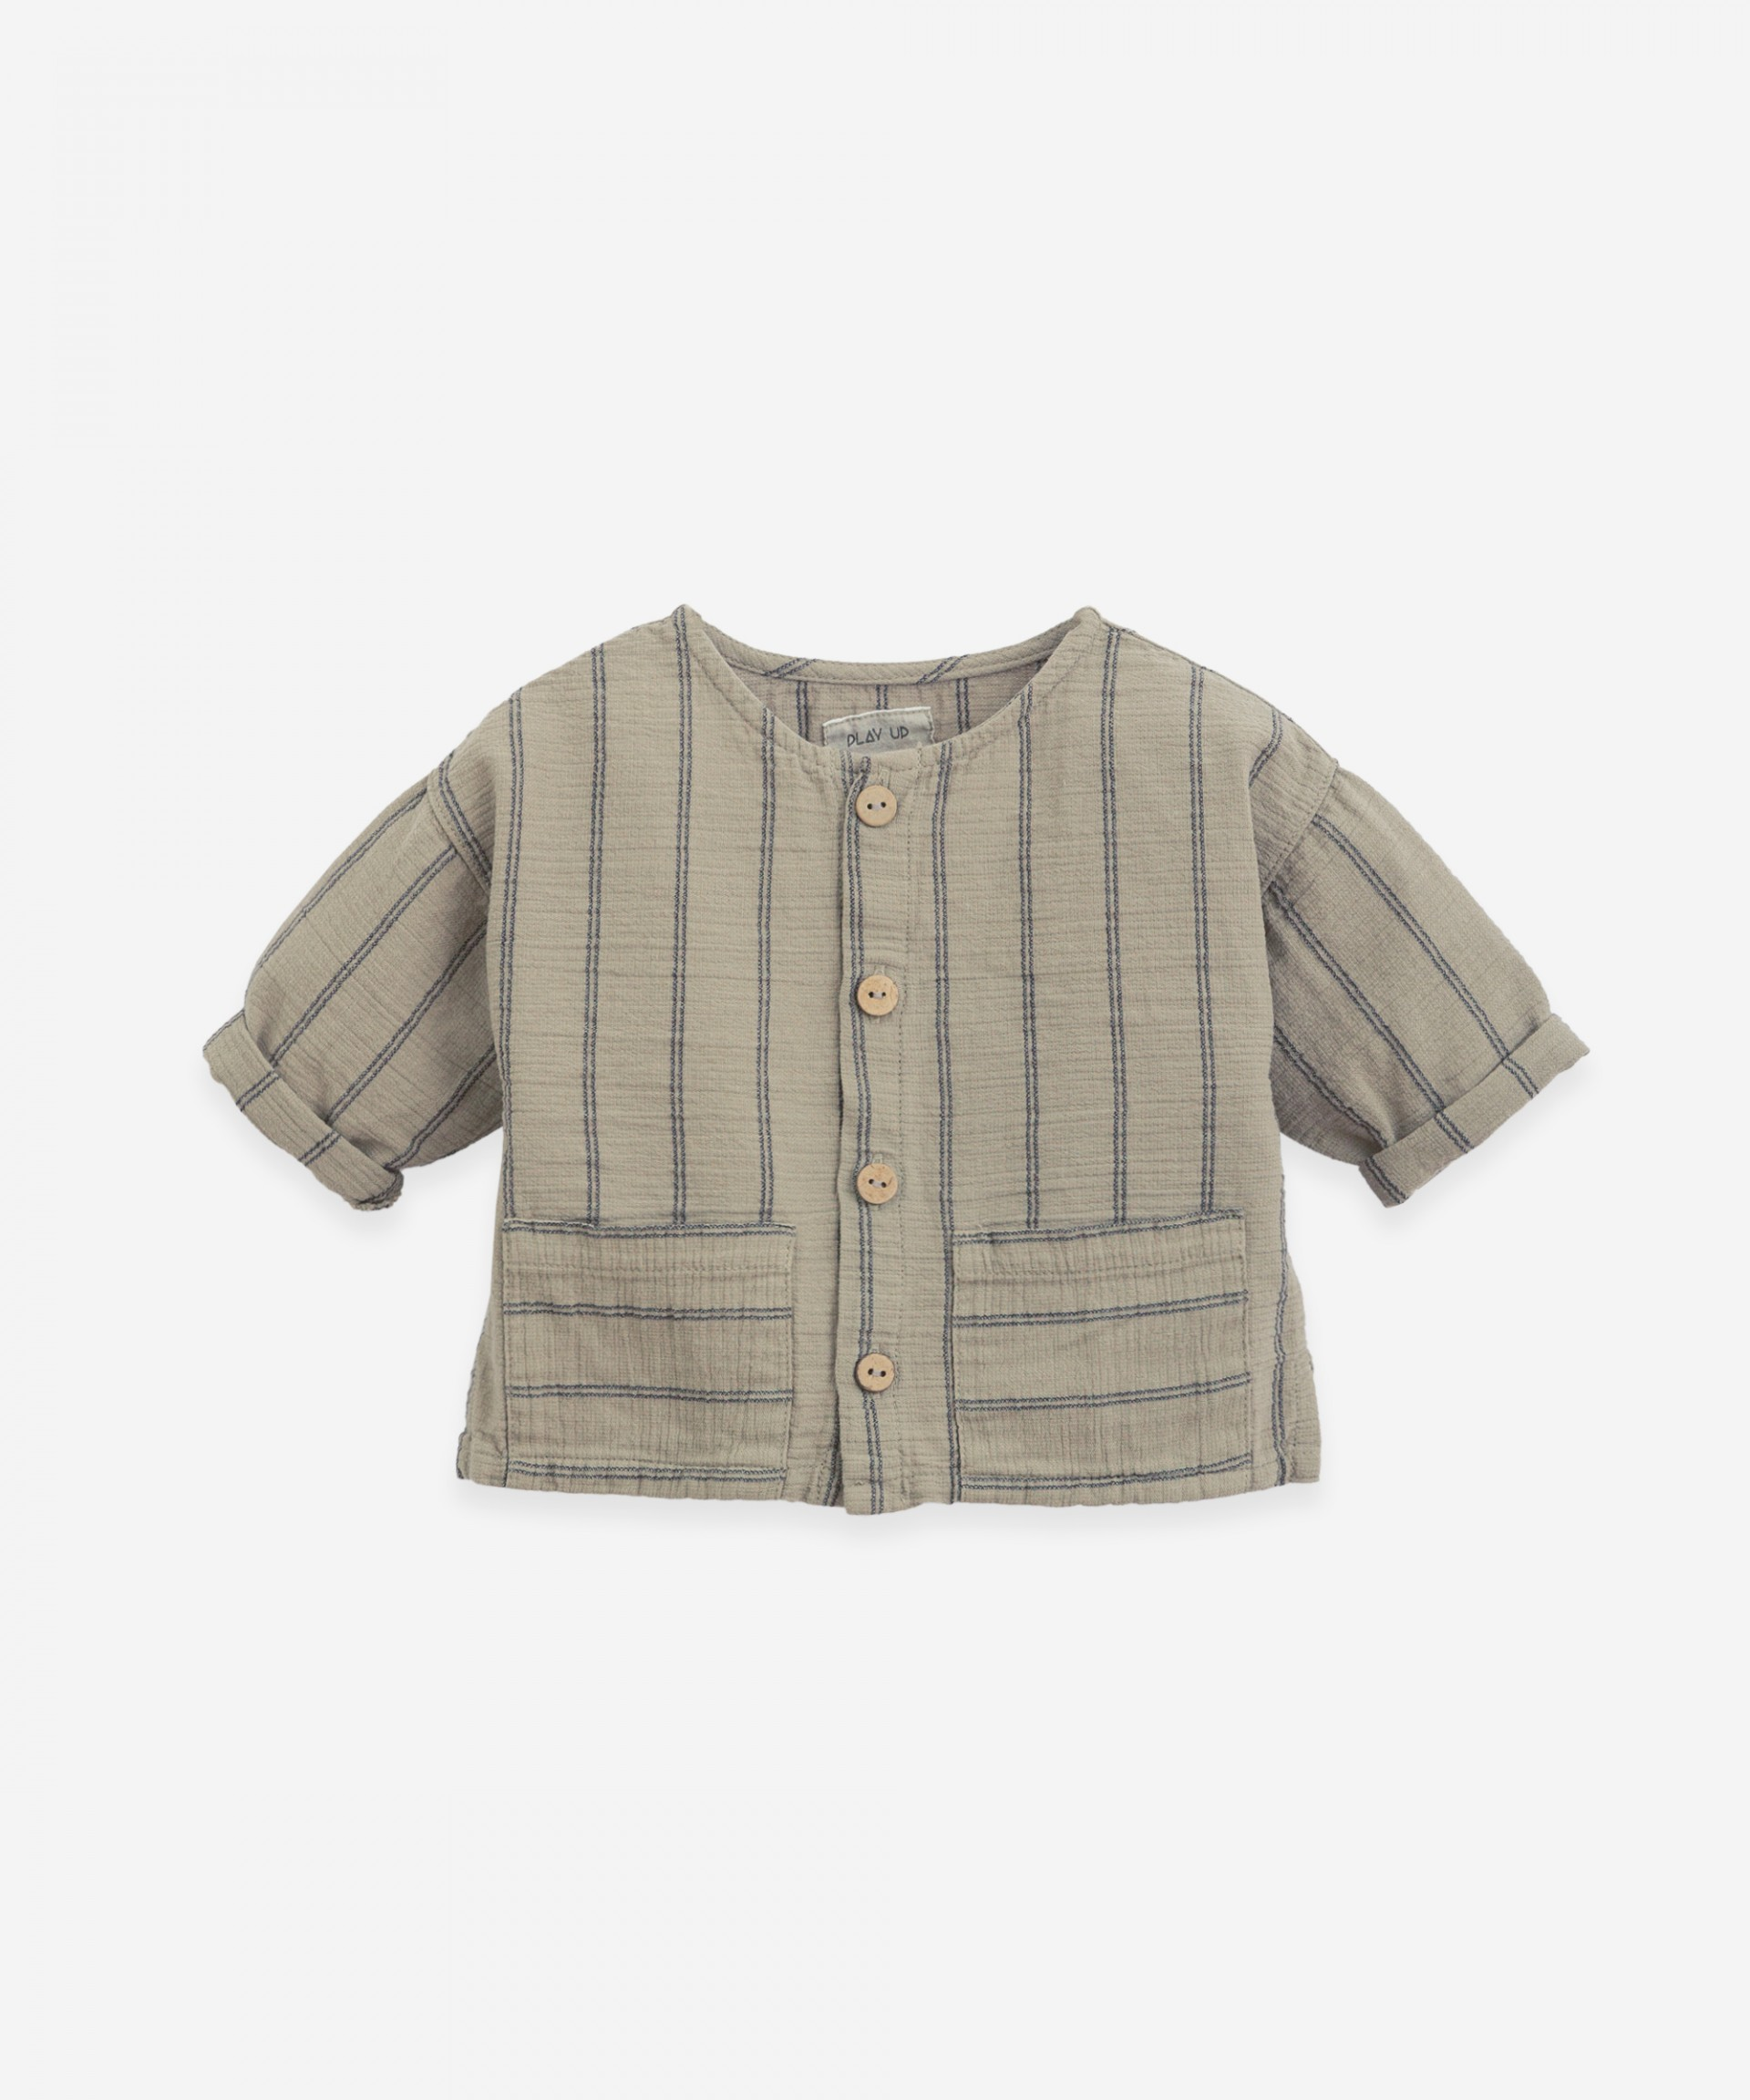 Woven shirt with long sleeves | Botany